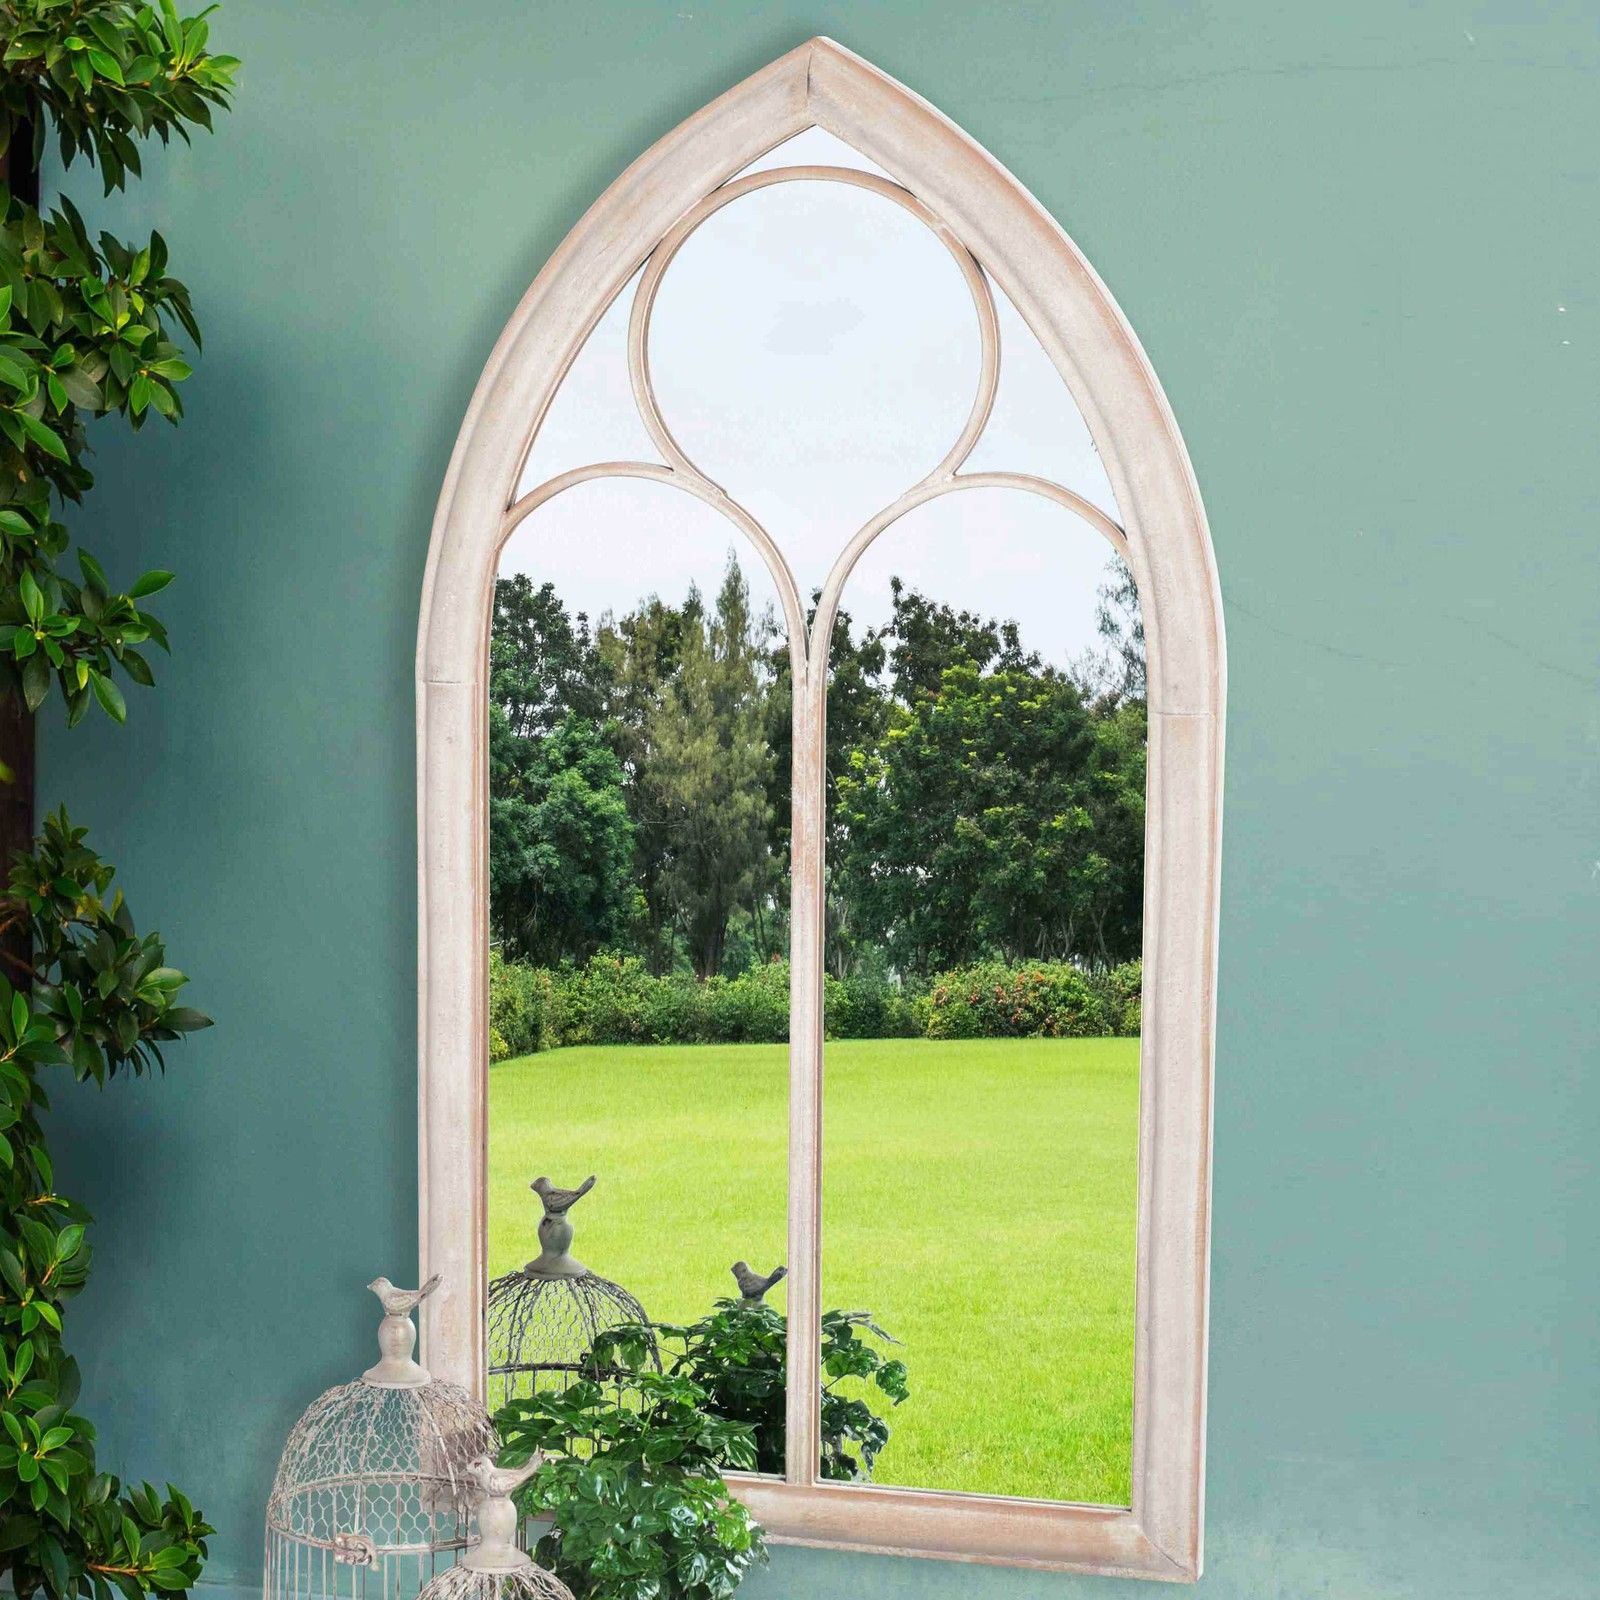 Decorative Full Length Wall Mirrors | Windowpane Mirror | Moroccan Wall Mirror